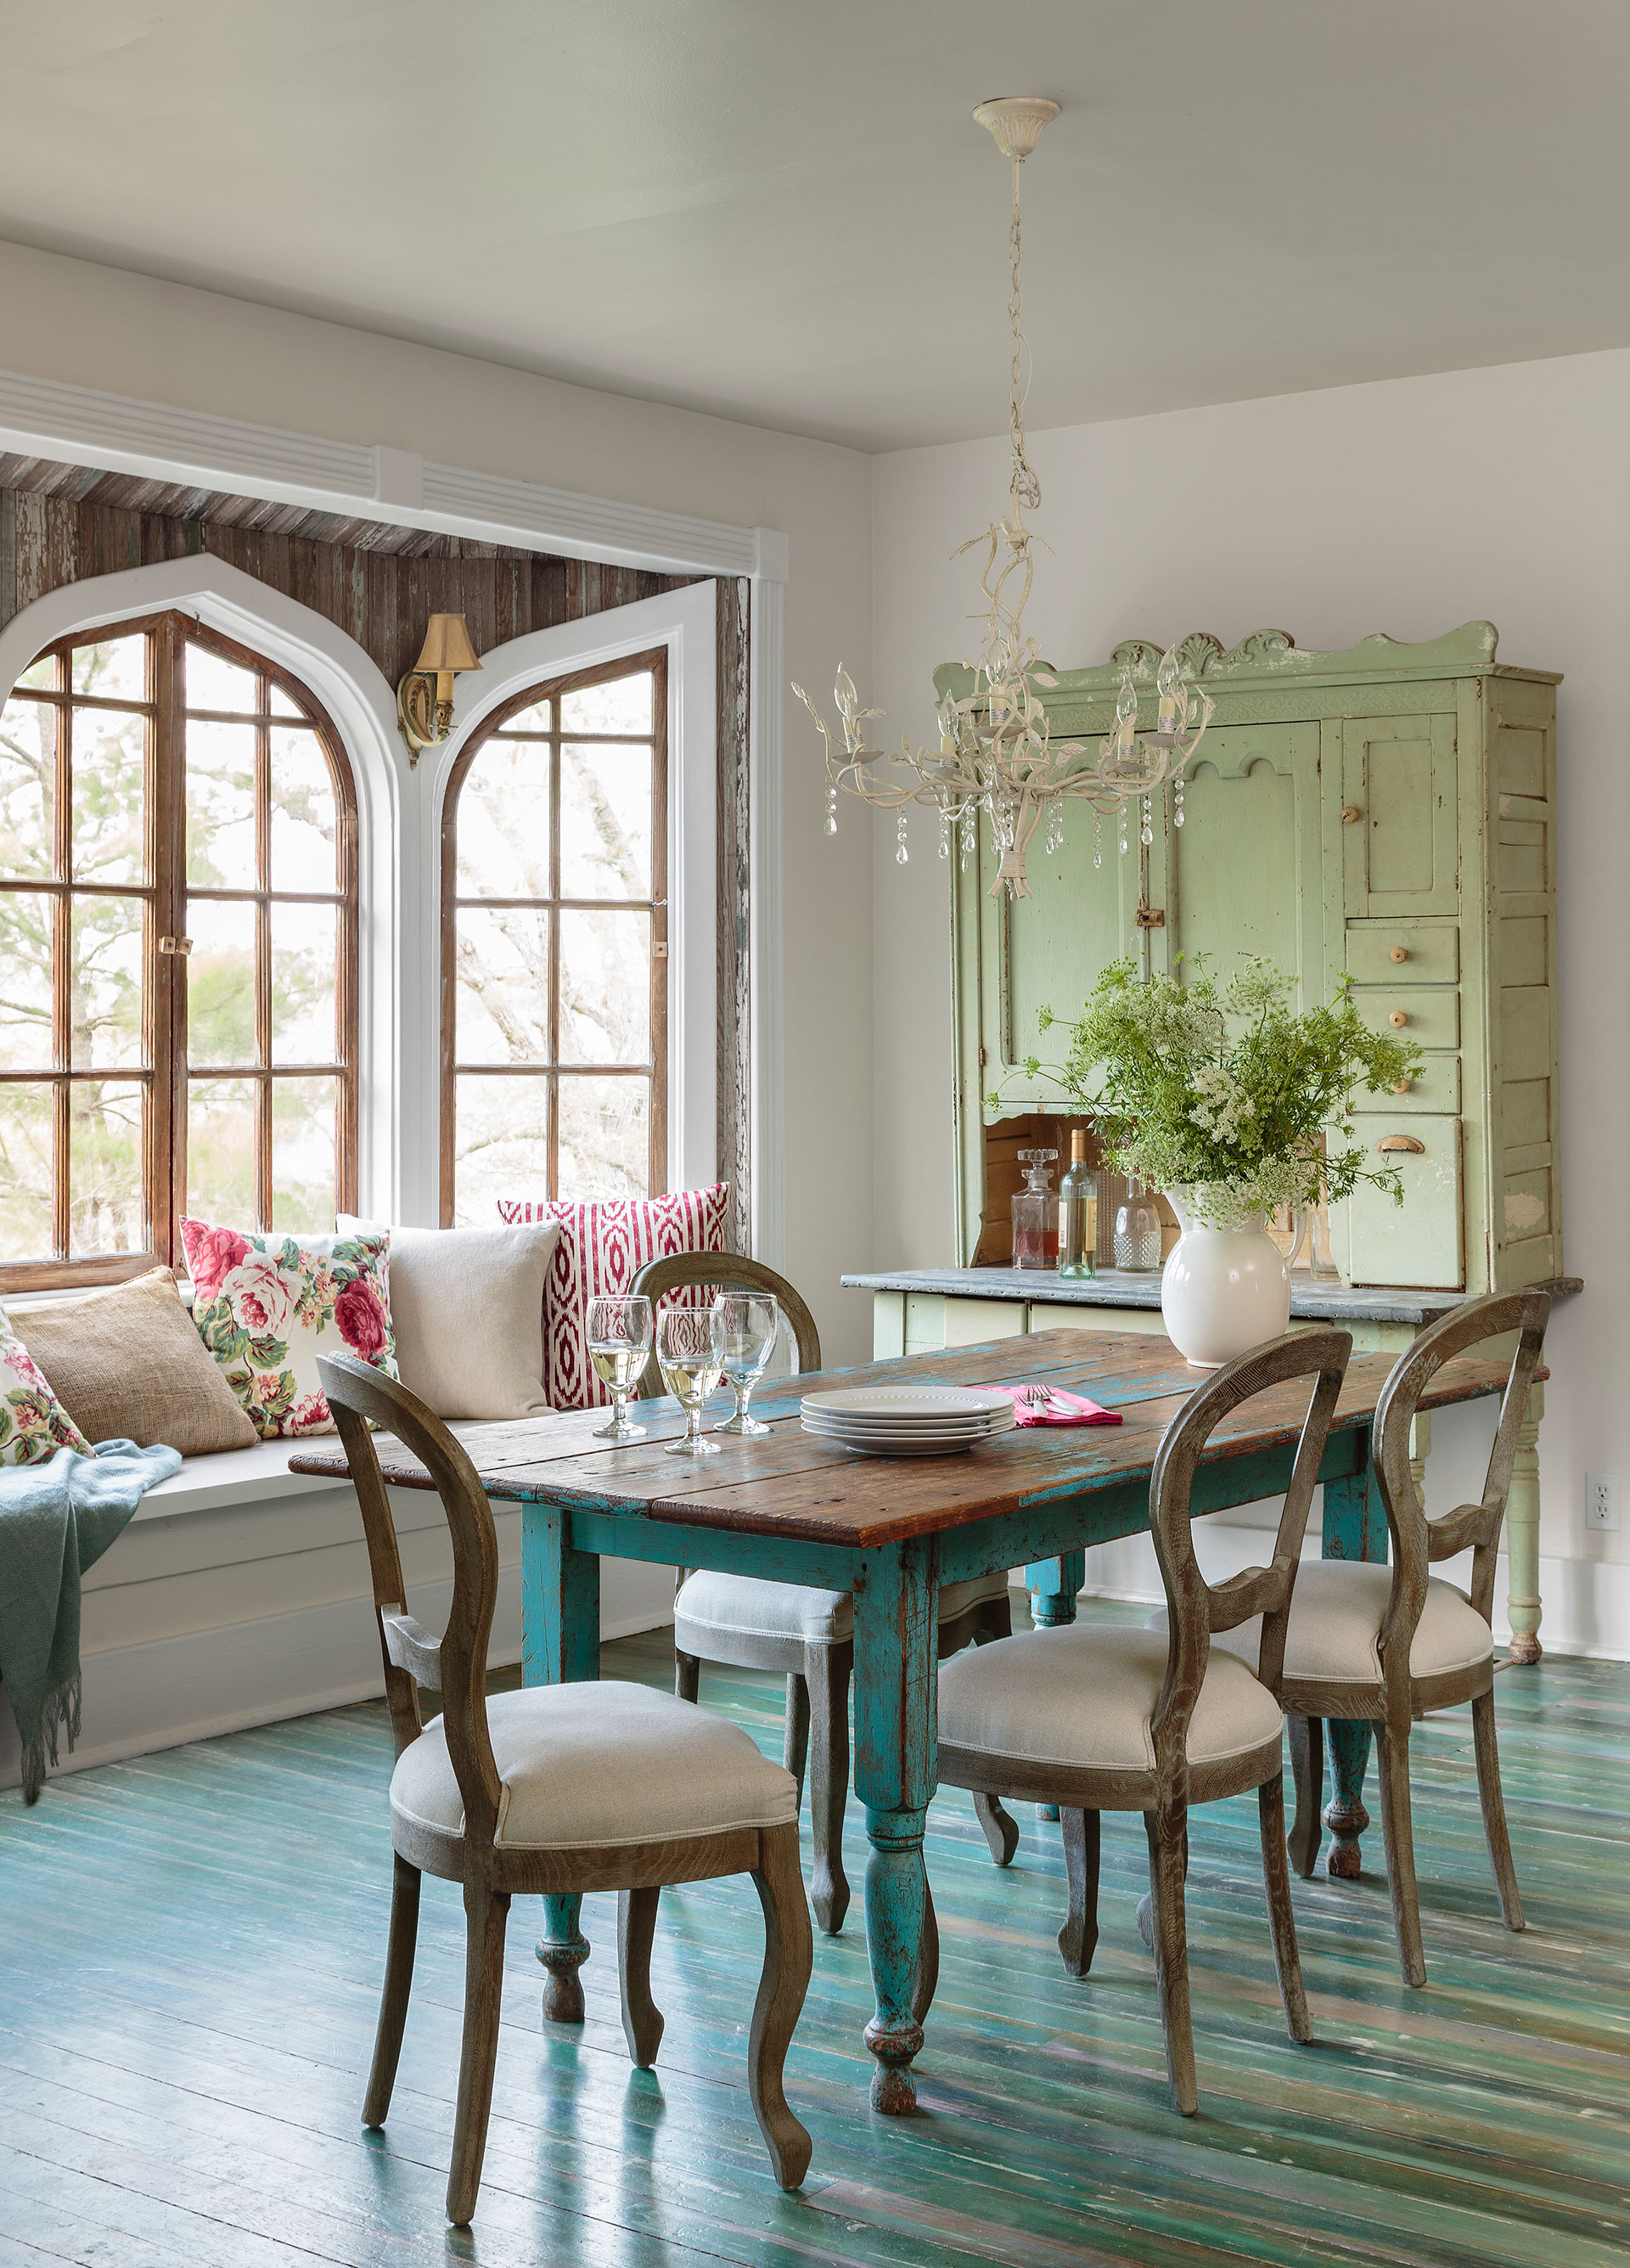 Chic dining room designs 85 best dining room decorating ideas - country dining room decor yggrbtb